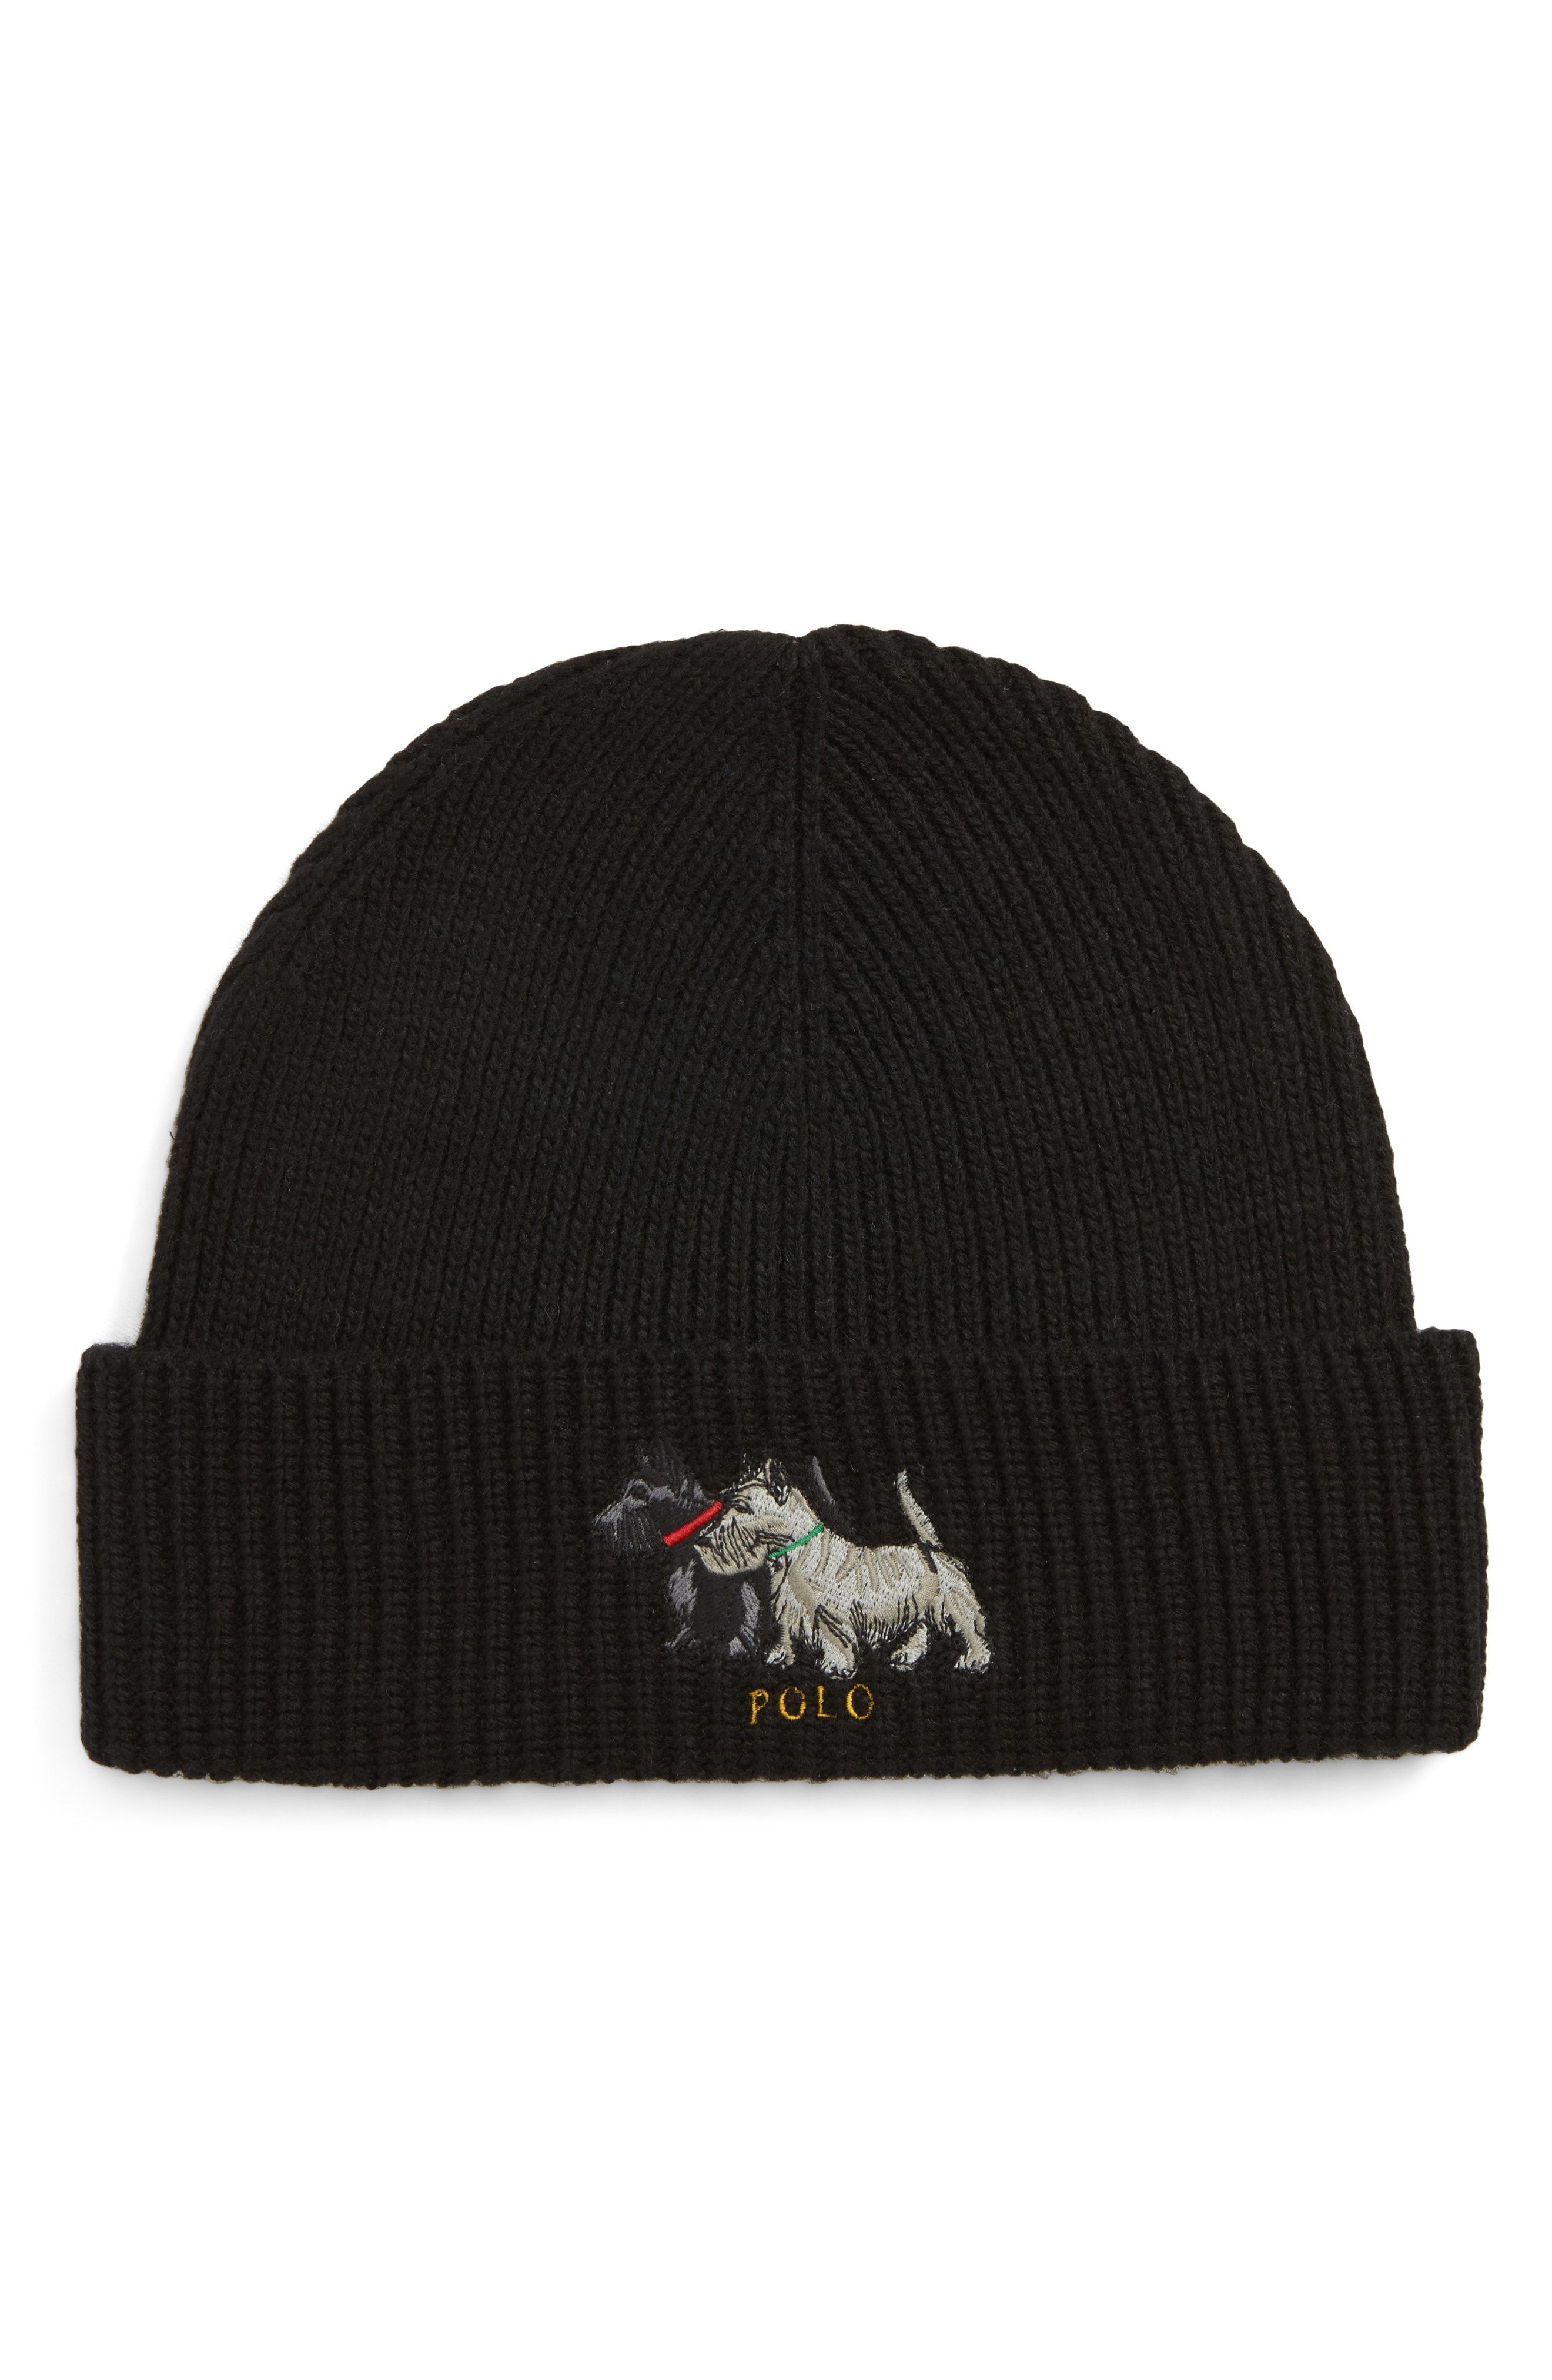 6851d88c4dd POLO RALPH LAUREN EMBROIDERED SCOTTIE DOGS BEANIE - BLACK.  poloralphlauren